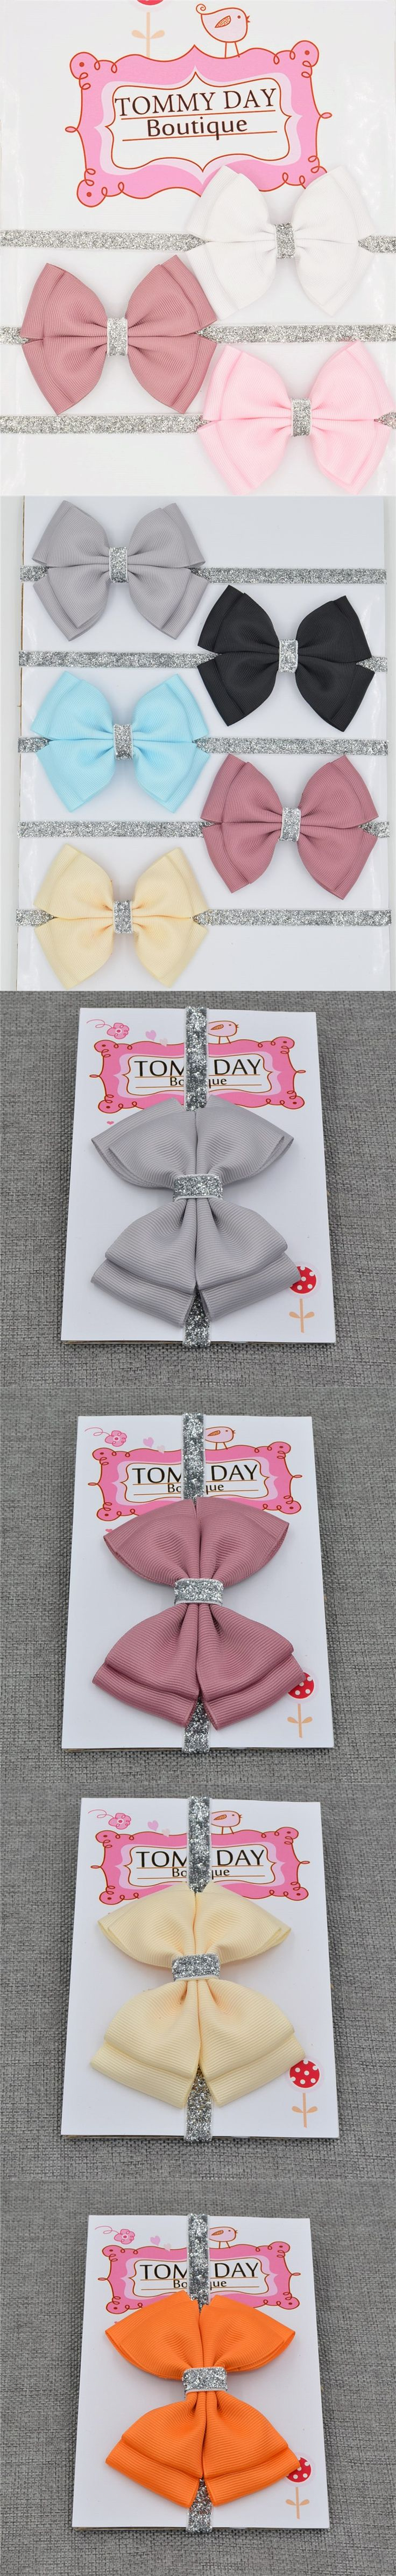 22 color new Baby hair bow flower Headband Silver ribbon Hair Band Handmade DIY hair accessories for children newborn toddler